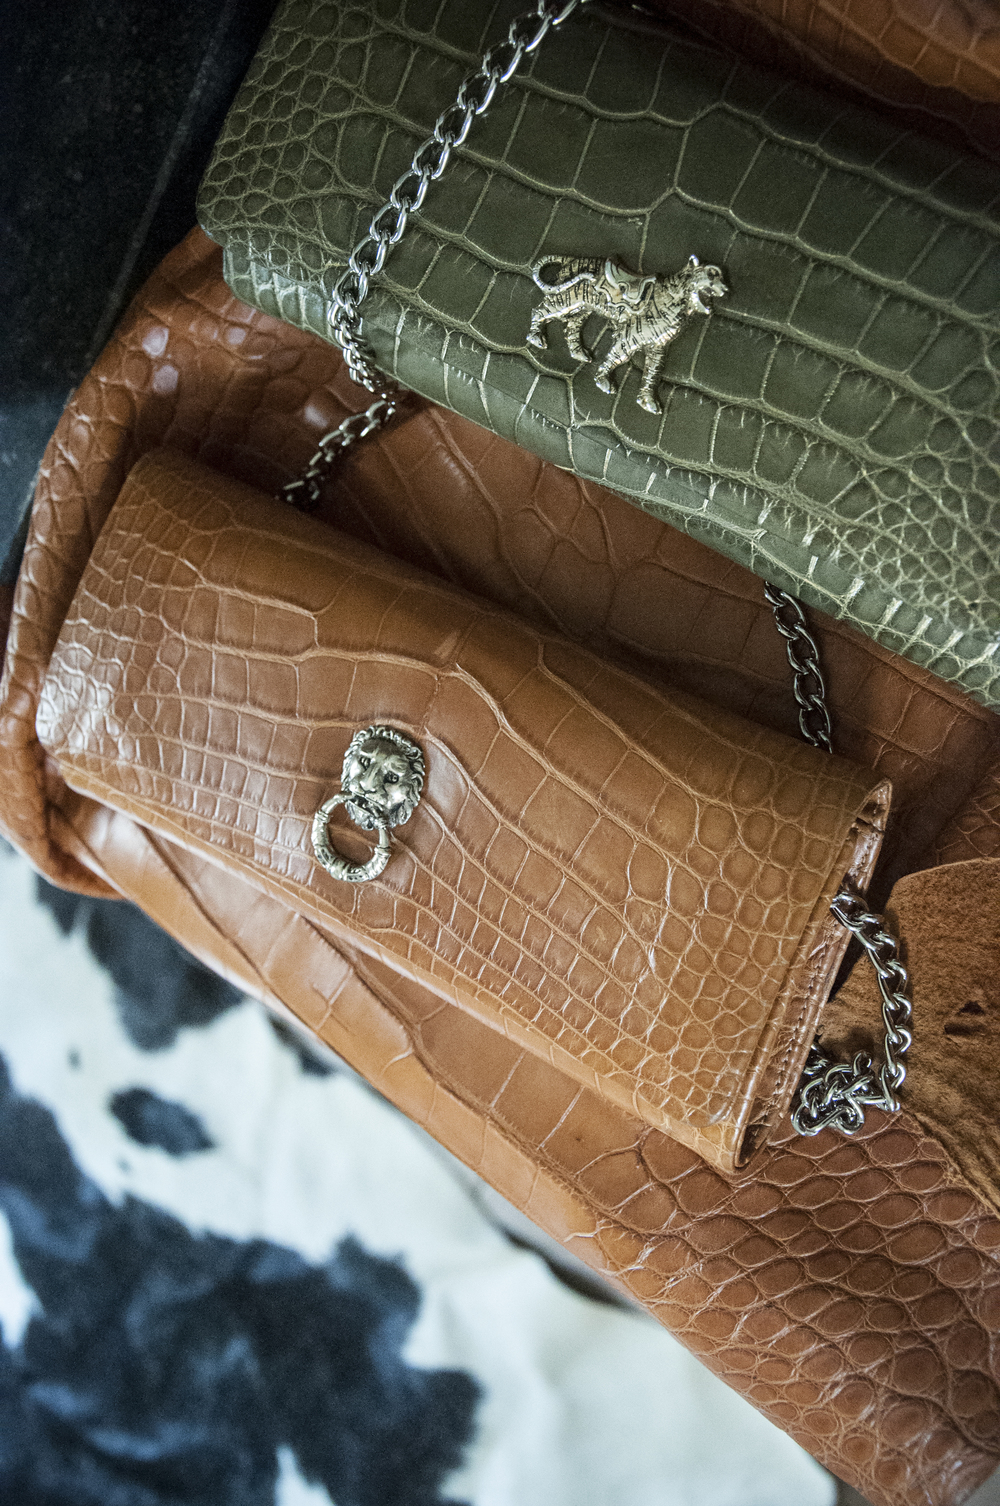 12 reagan charleston alligator bags.jpg